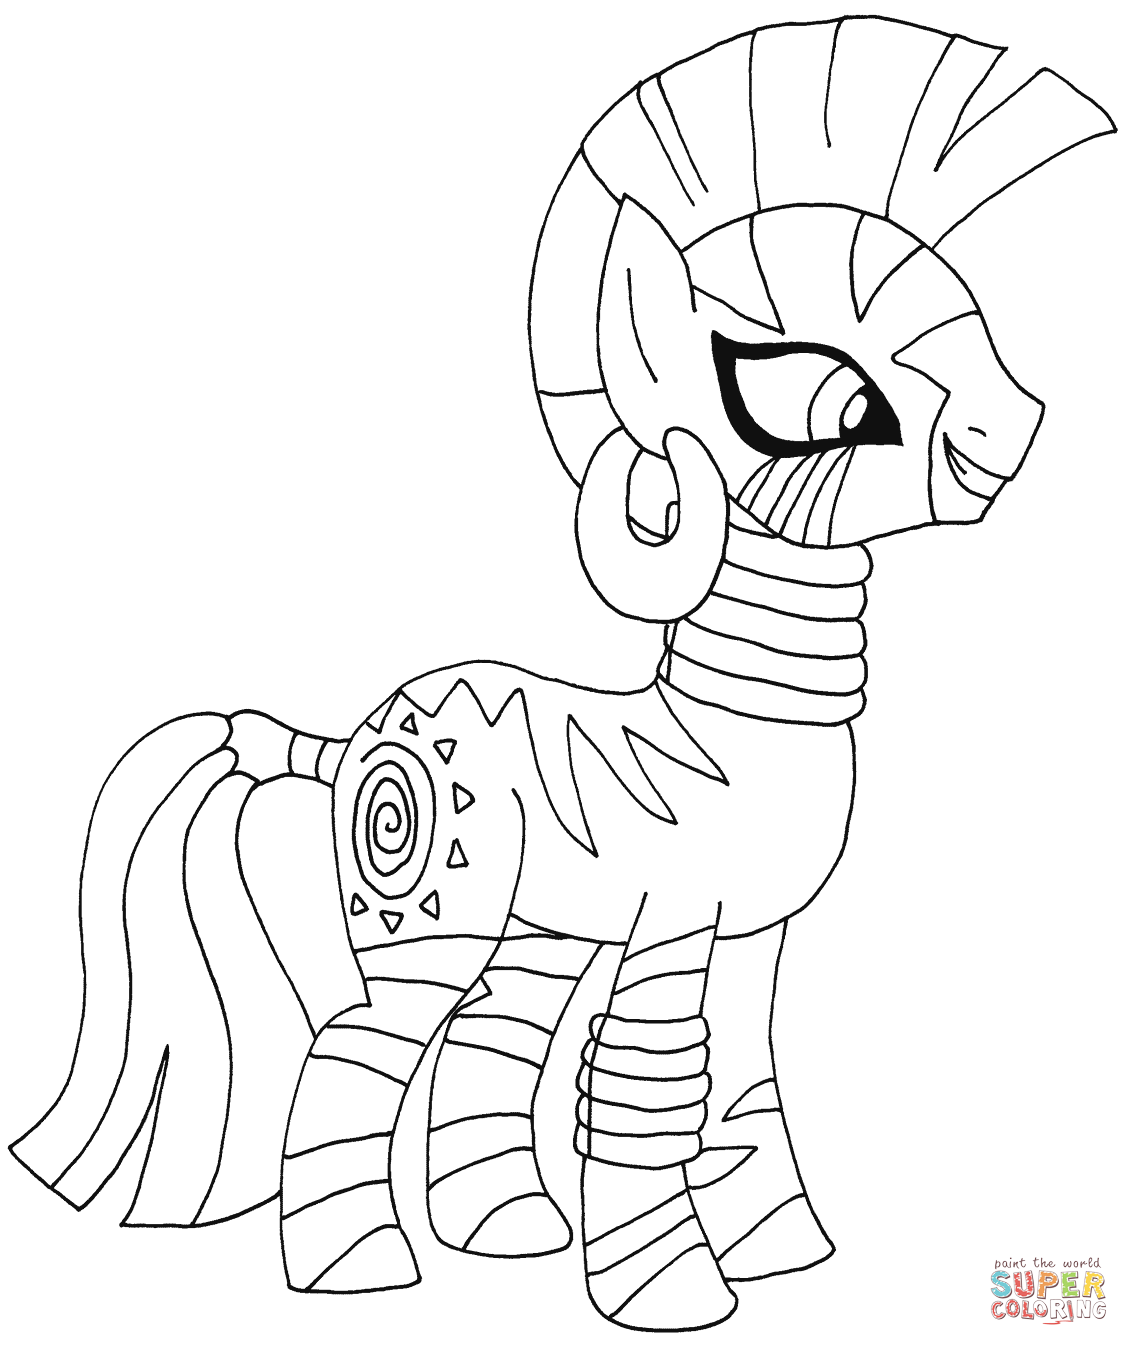 Ausmalbilder Kostenlos My Little Pony : My Little Pony Coloring Pages Pony Coloring Pages Mlp Coloring Pages